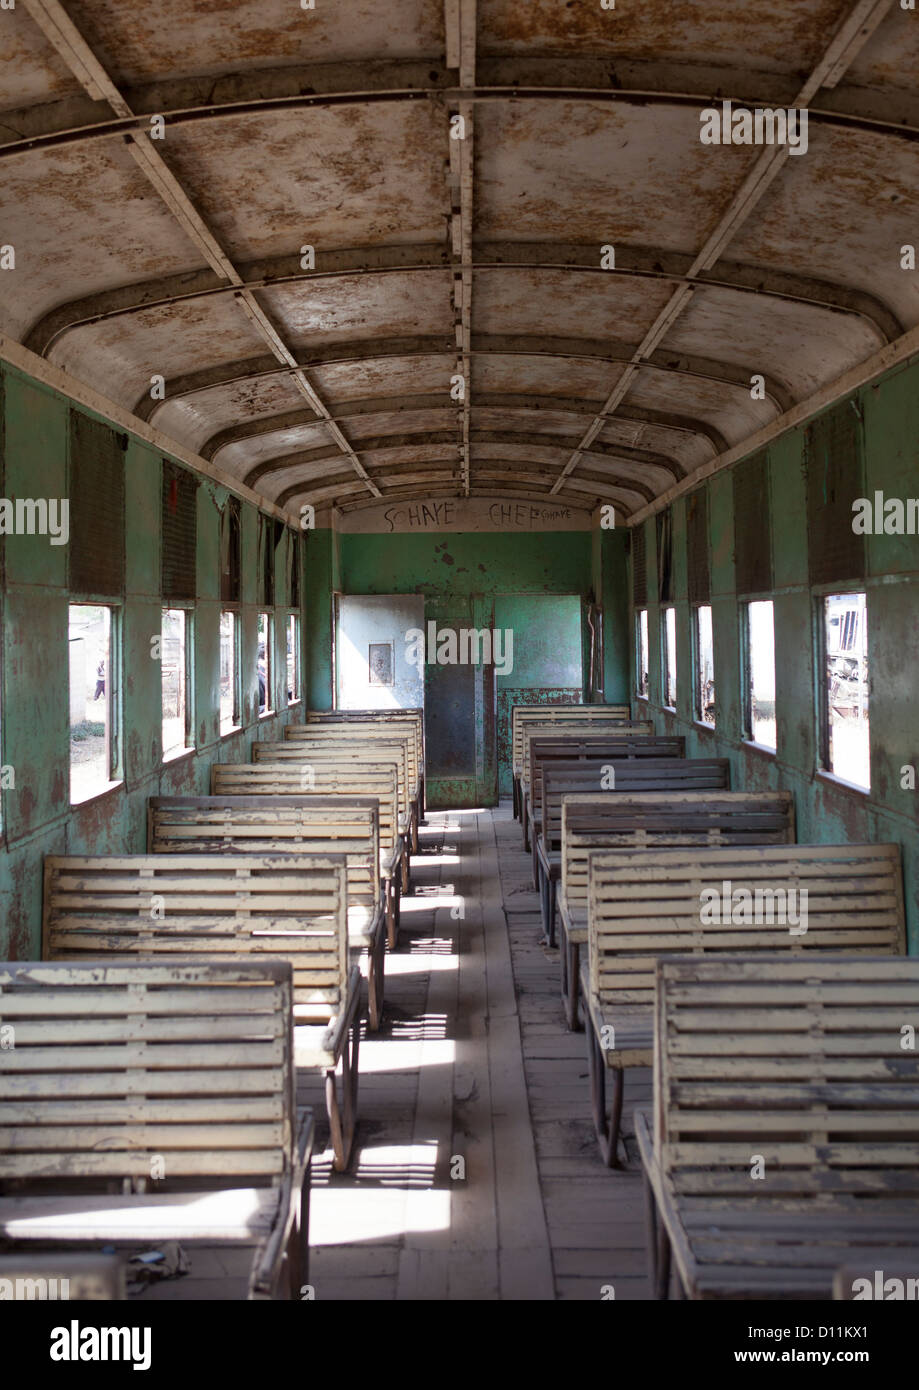 Inside Djibouti Addis Ababa Old Train Third Class, Dire Dawa Train Station, Ethiopia - Stock Image